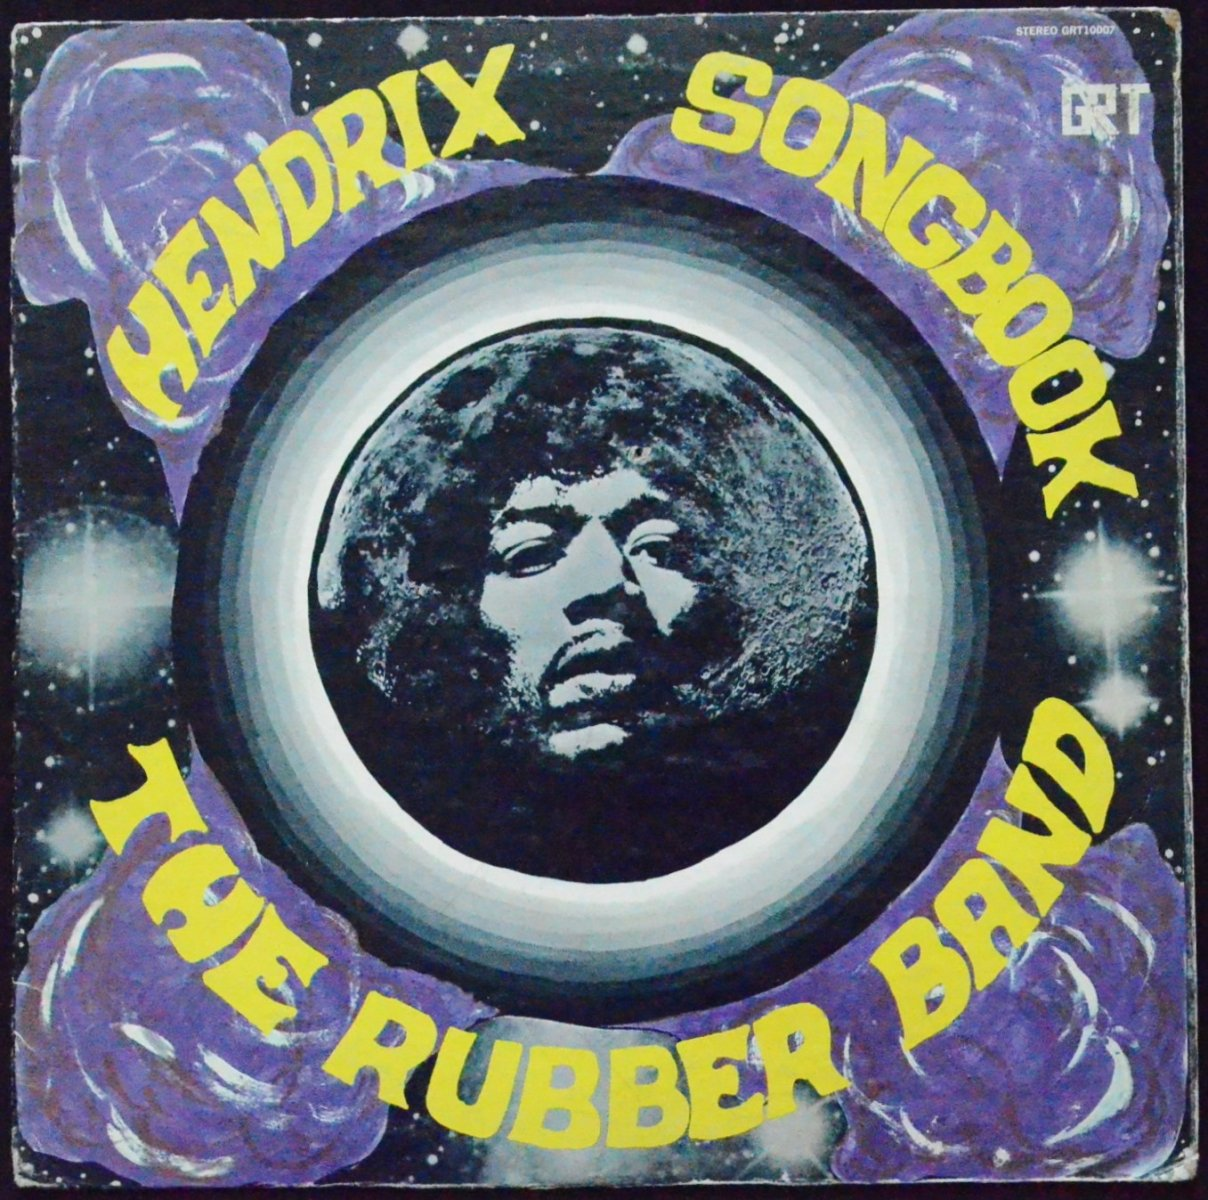 THE RUBBER BAND / HENDRIX SONGBOOK (LP)